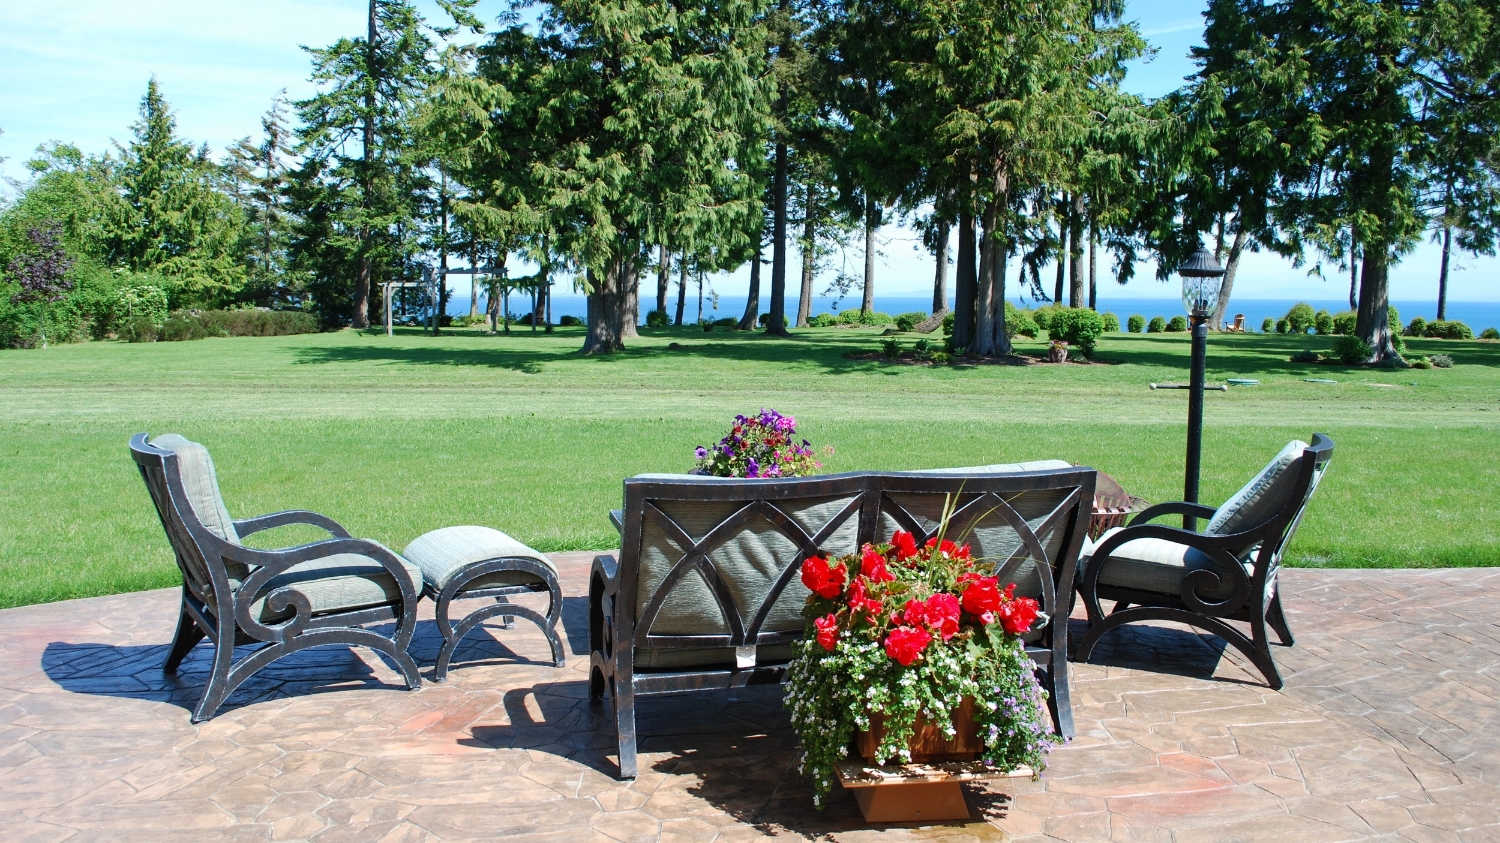 Eden By The Sea Bed And Breakfast In Port Angeles Wa